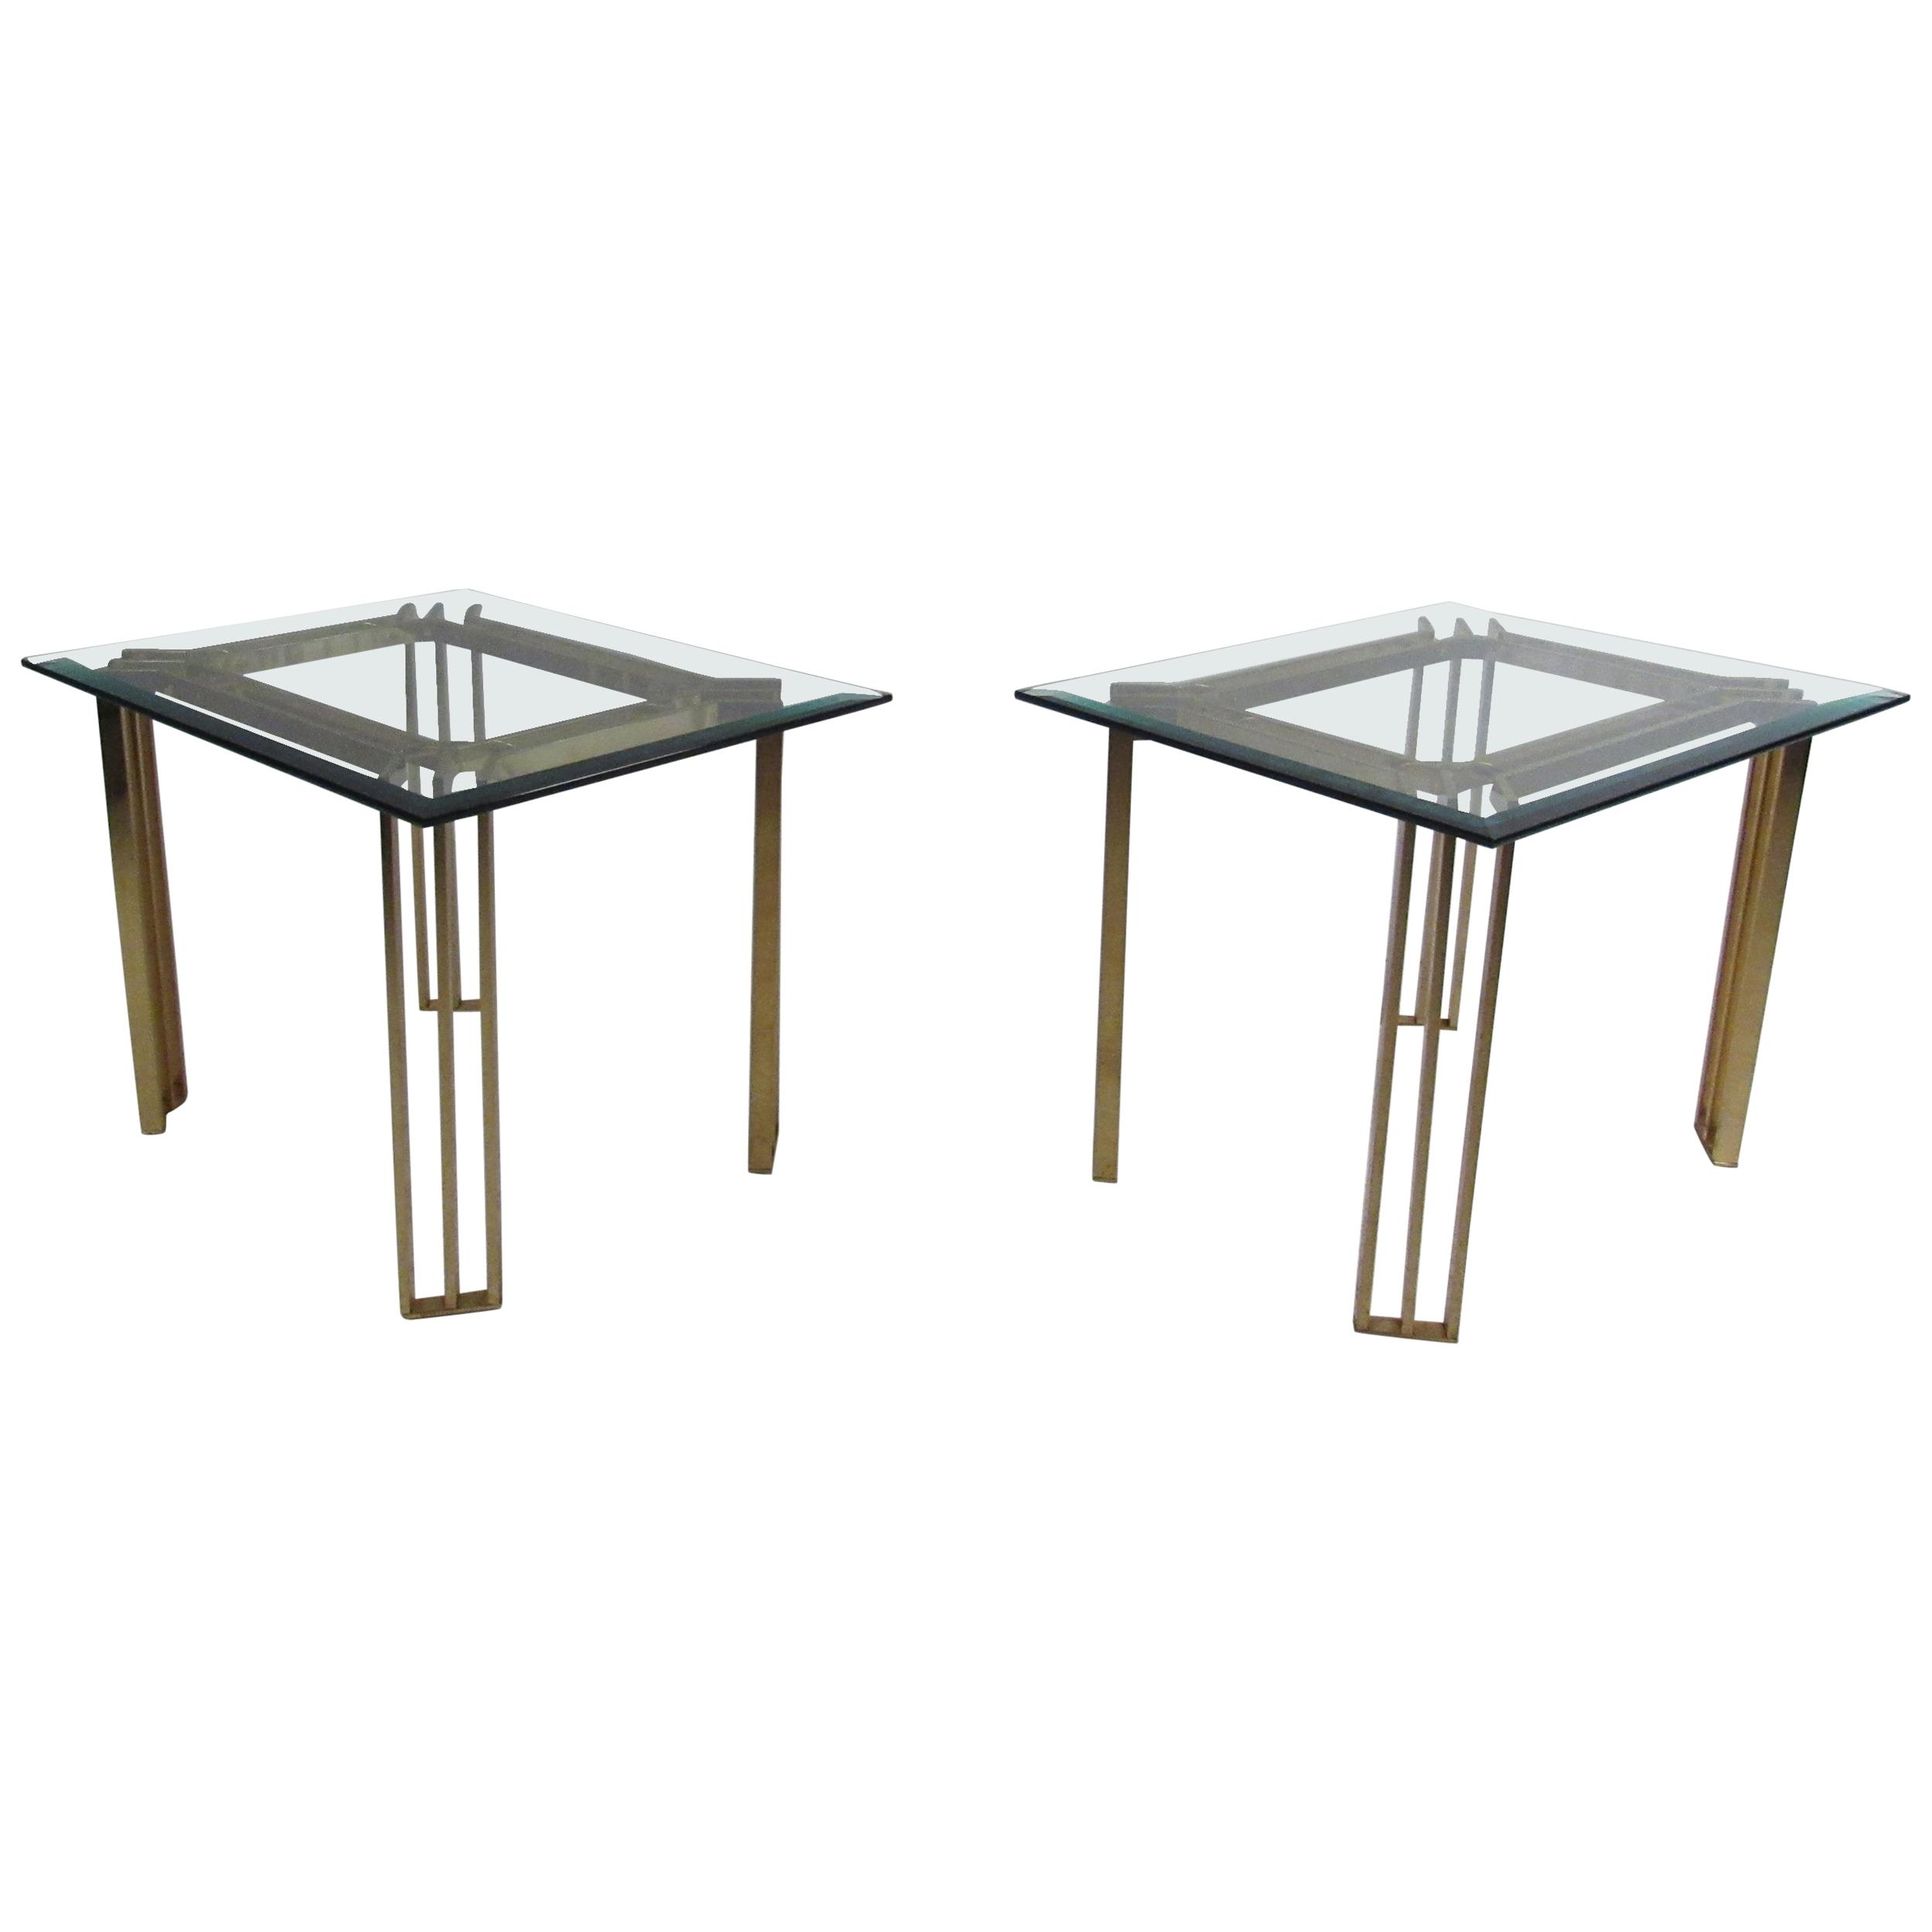 pair mid century modern brass end tables with glass tops for master table top antique gray nightstand ashley furniture nesting stickley scottsdale stainless steel bathroom shelves